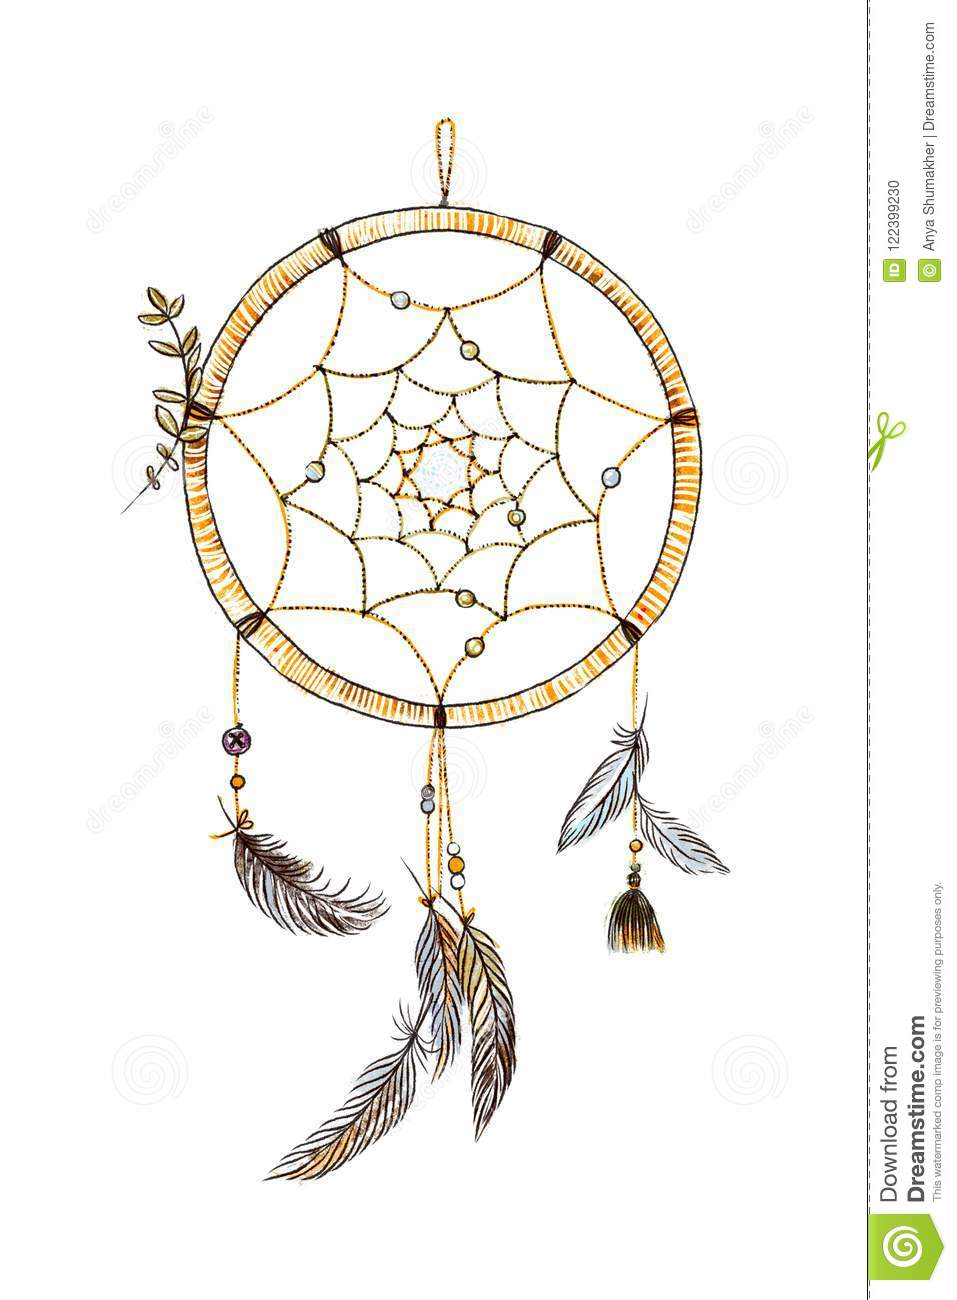 - Hand Drawn Ornate Dream Catcher With Feathers In Soft Trendy